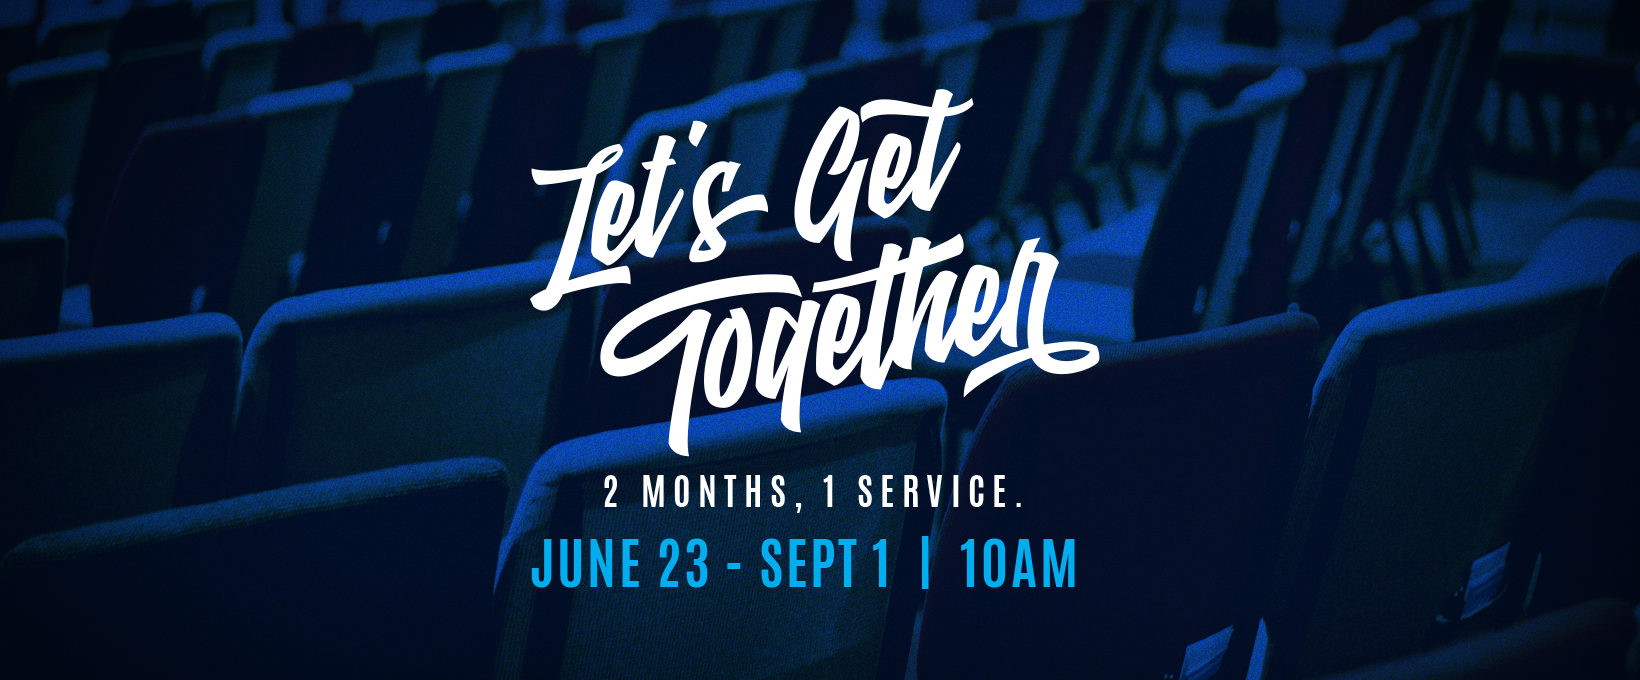 Faithbrook_SummerHours_LetsGetTogether_1640x680.png